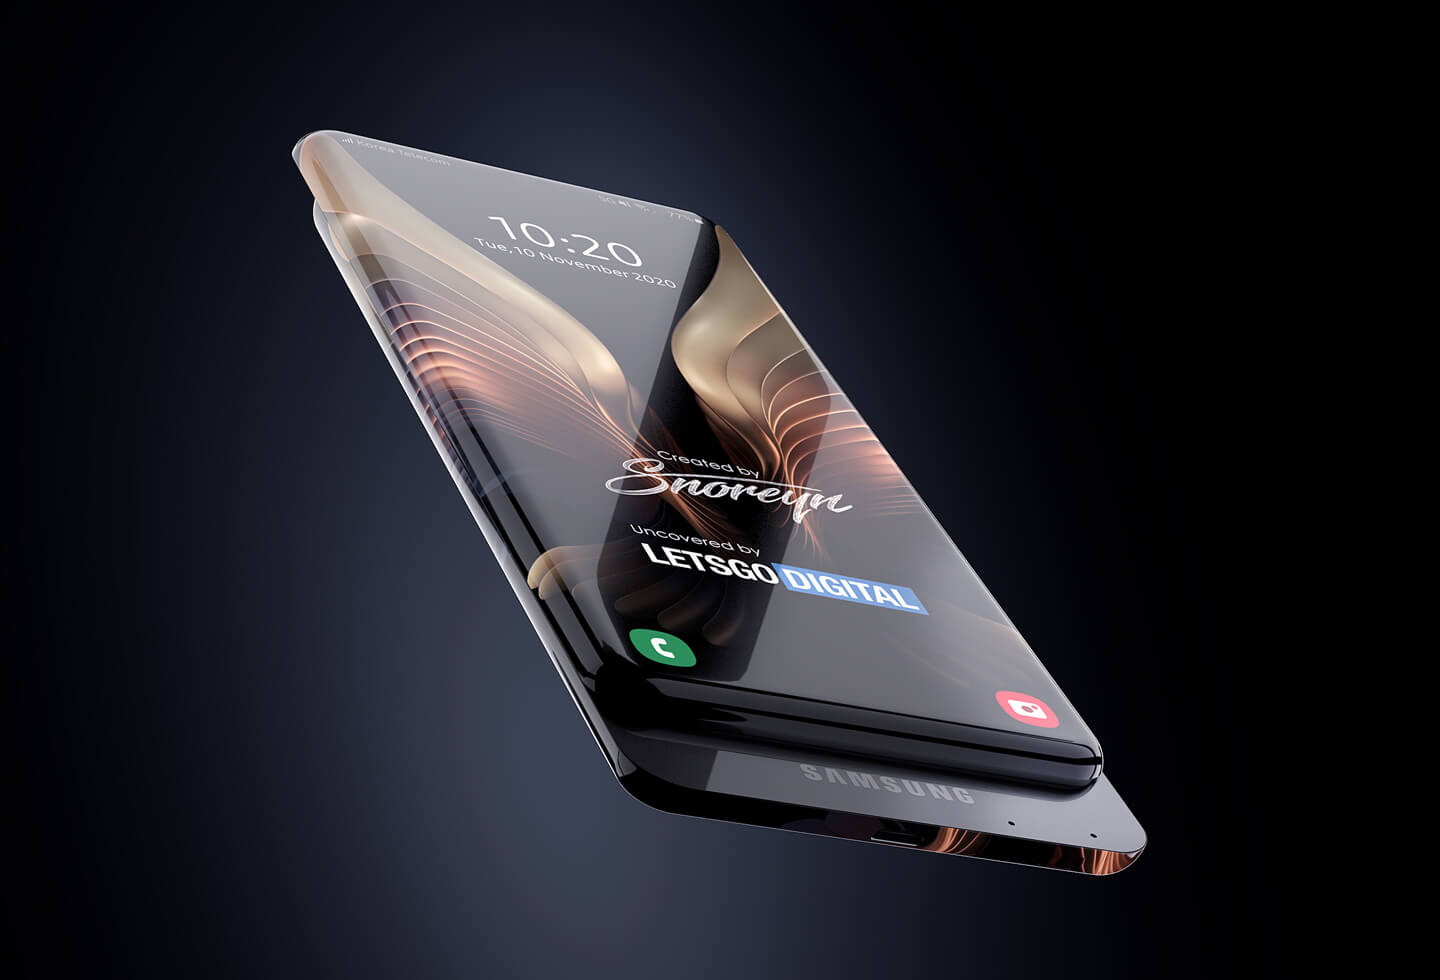 Surround display smartphone